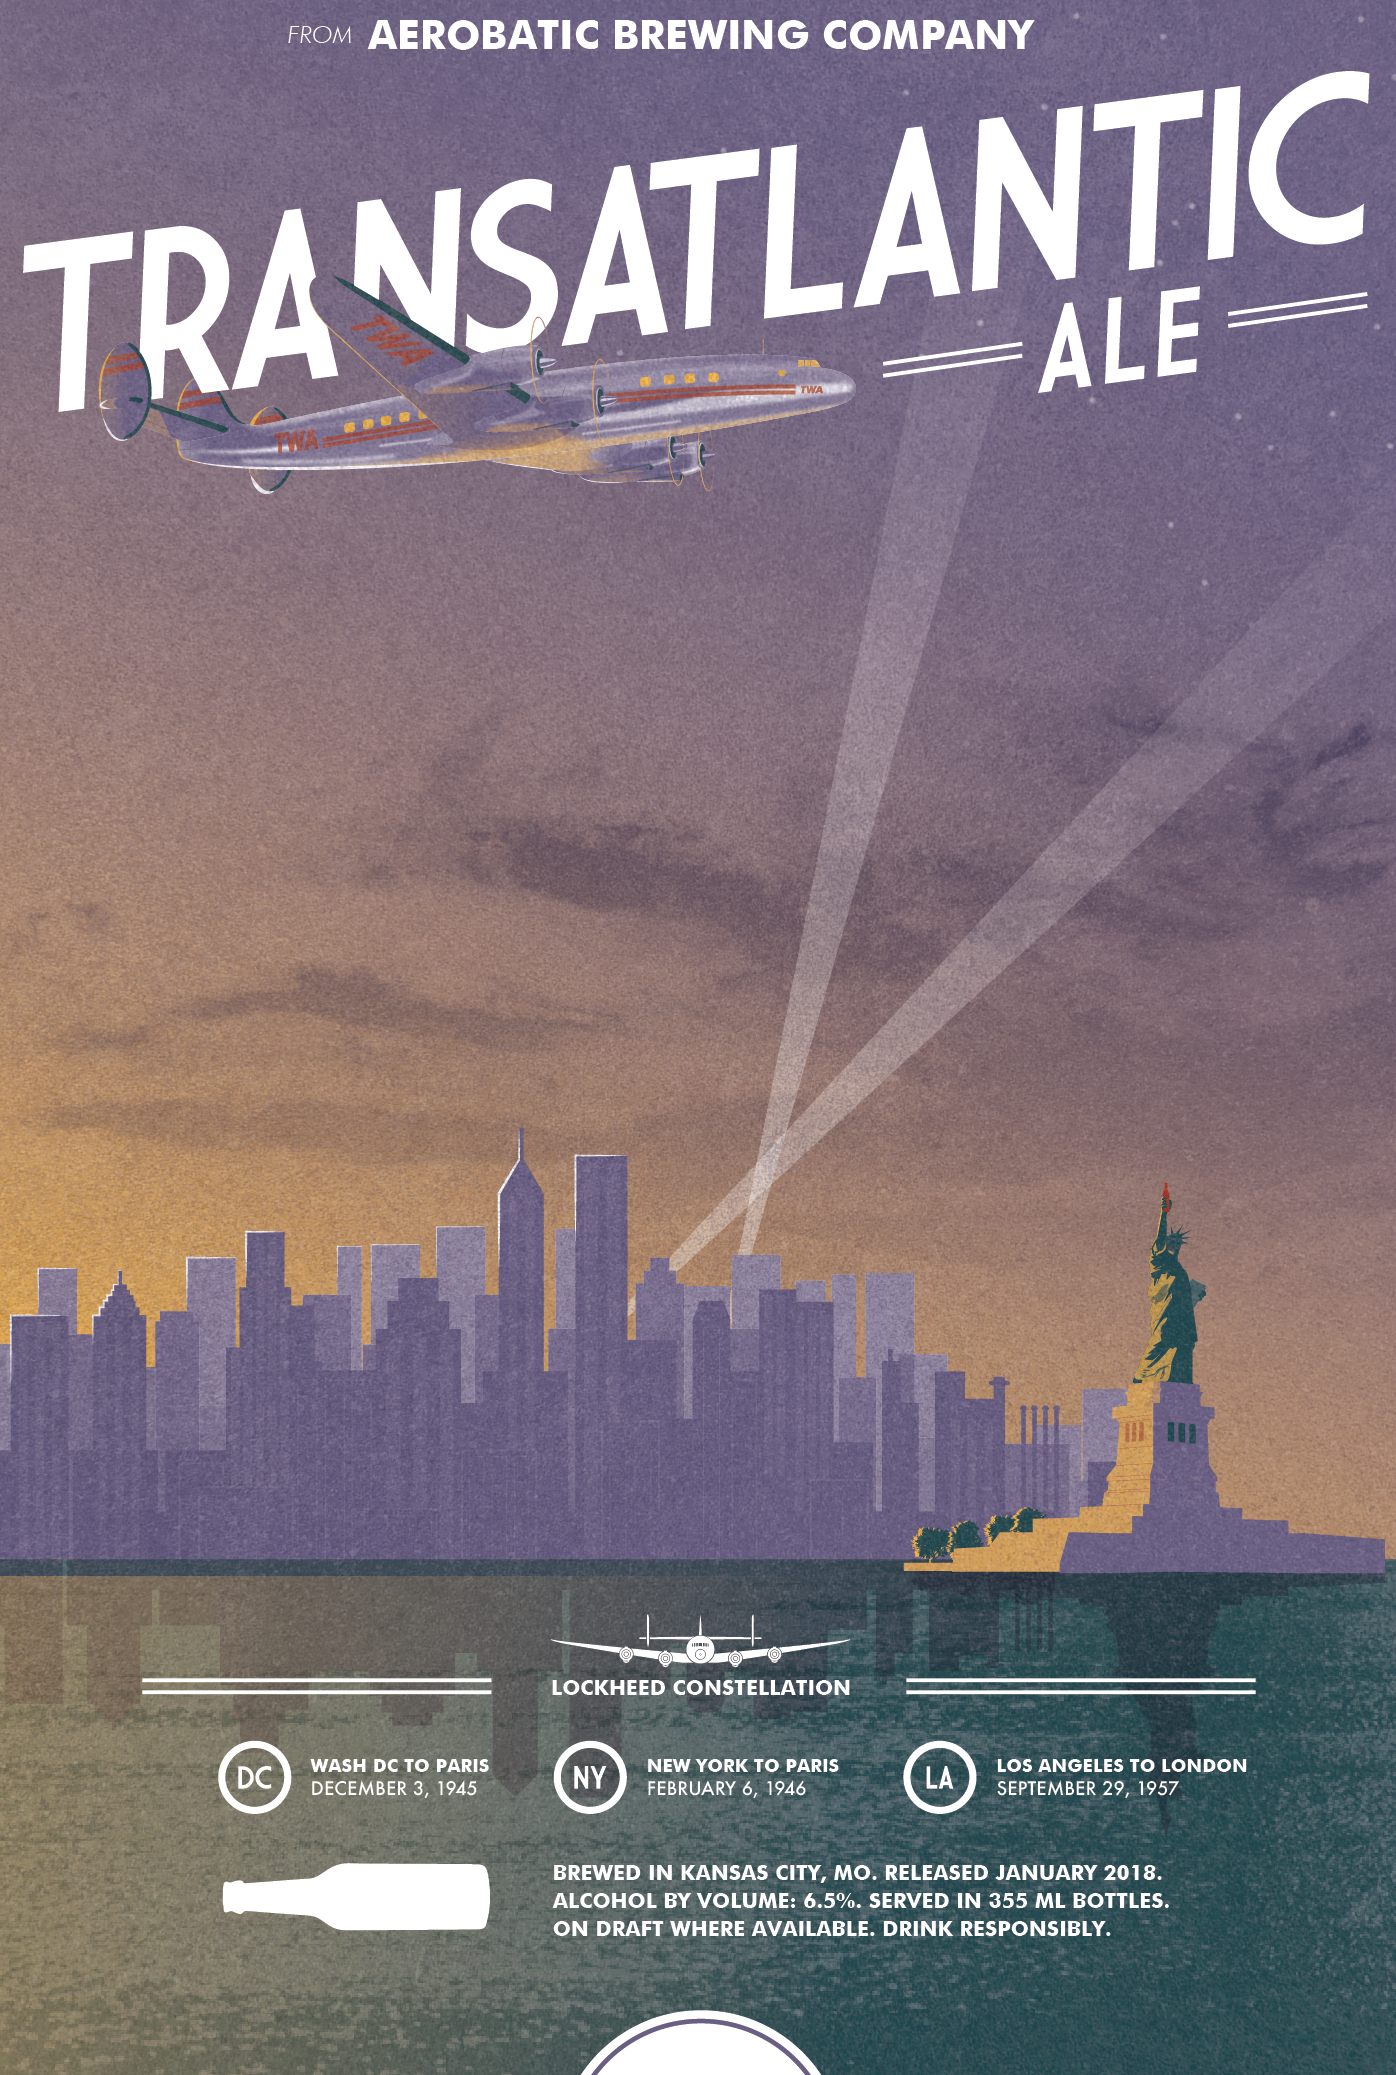 AEROBATIC BREWING COMPANY TRANSATLANTIC ALE - BRANd strategy, identity design, AND PACKAGING